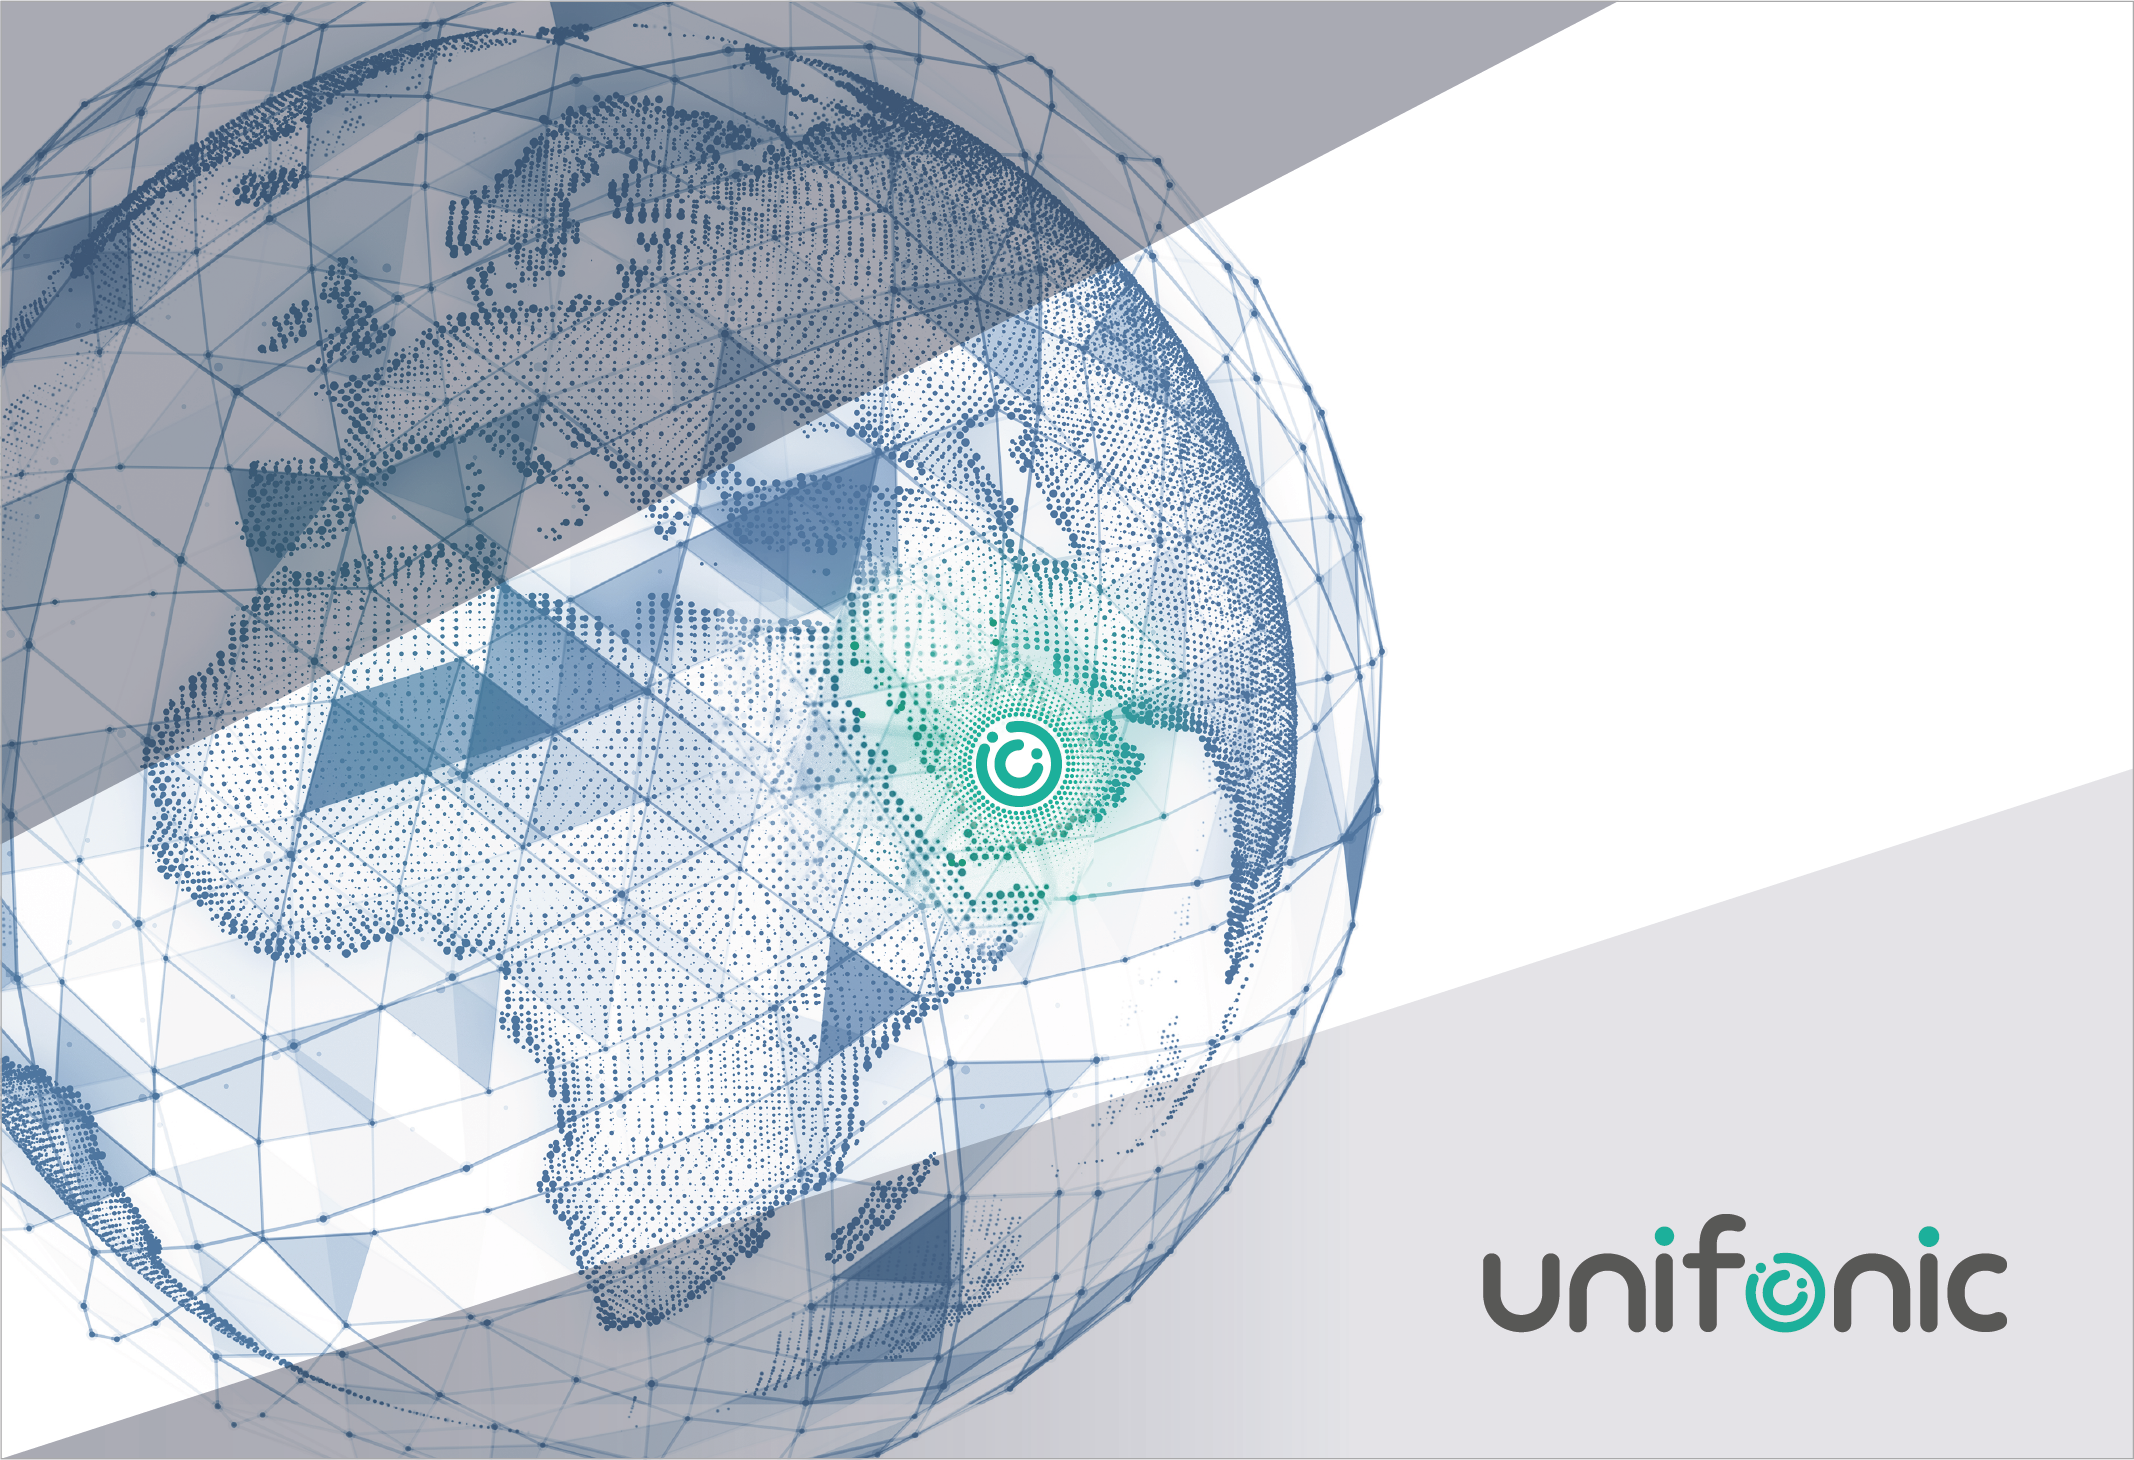 Unifonic has closed a $125M Series B round